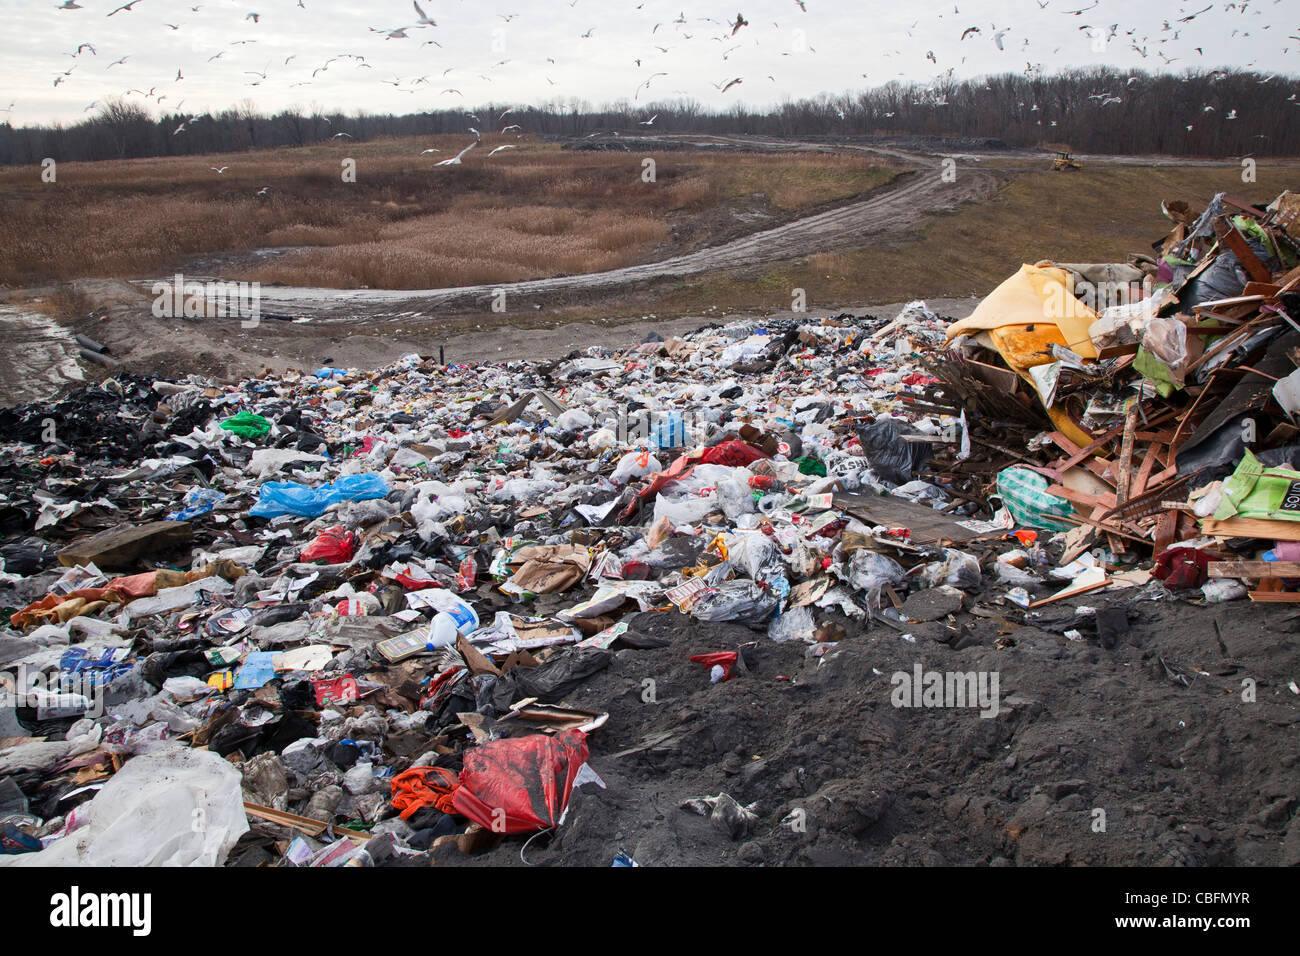 Smith's Creek, Michigan - Garbage dumped at a landfill. - Stock Image